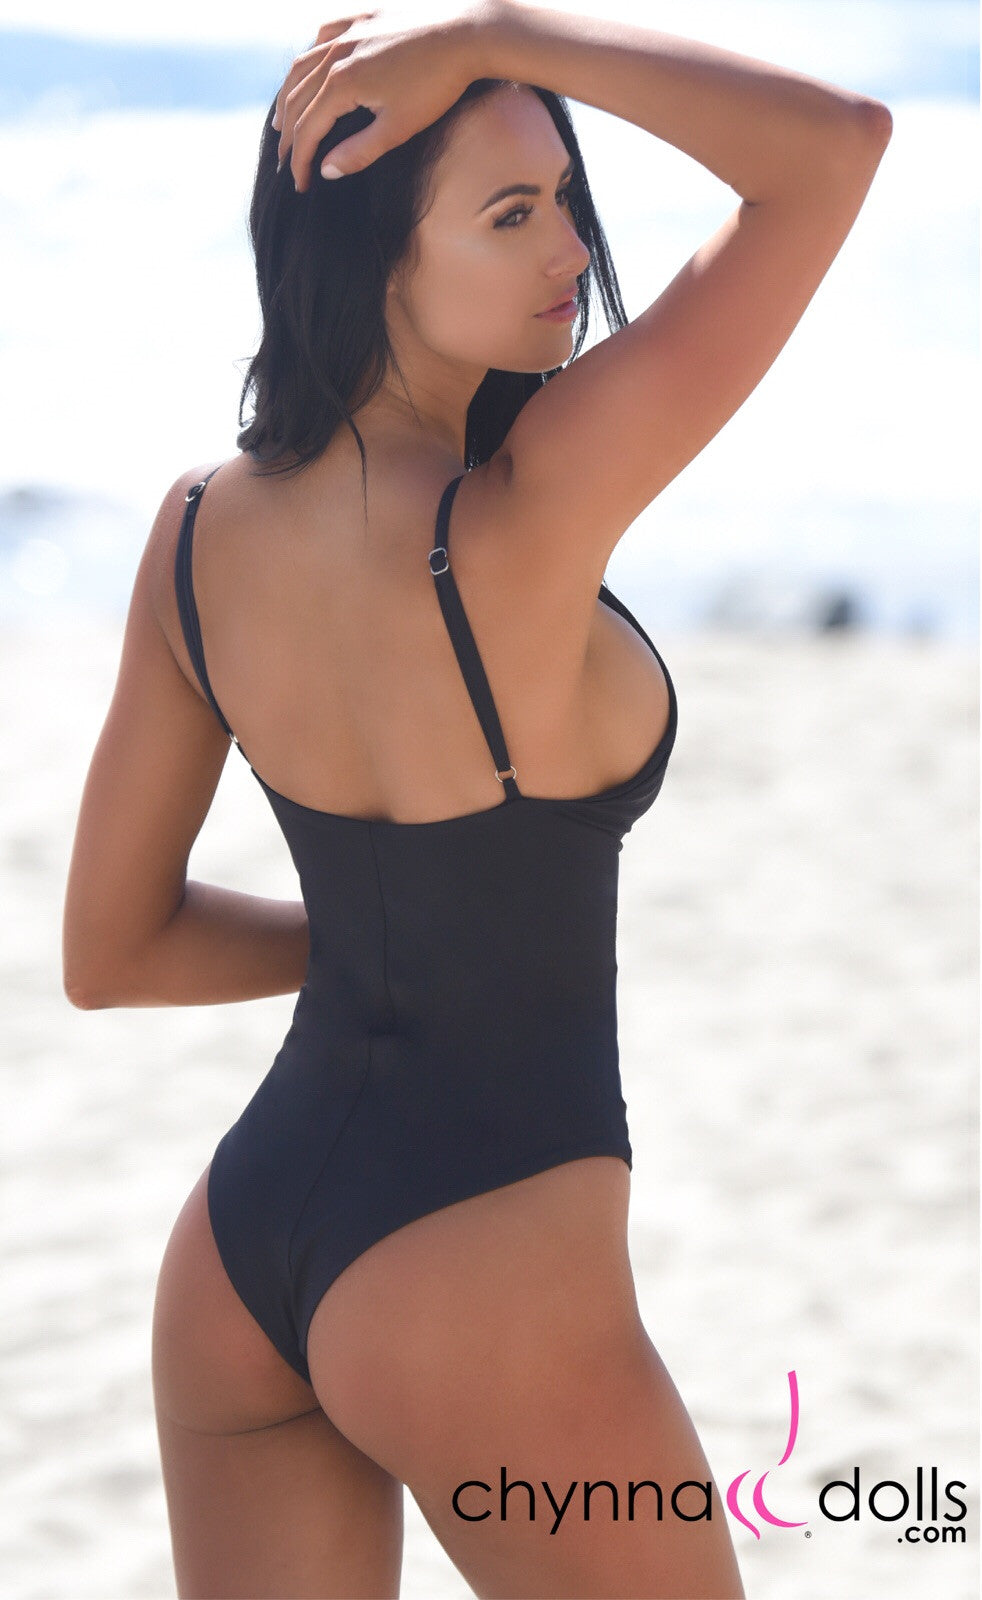 ST. JOHN: Monokini w/ Cage Front Detail in Black - Chynna Dolls